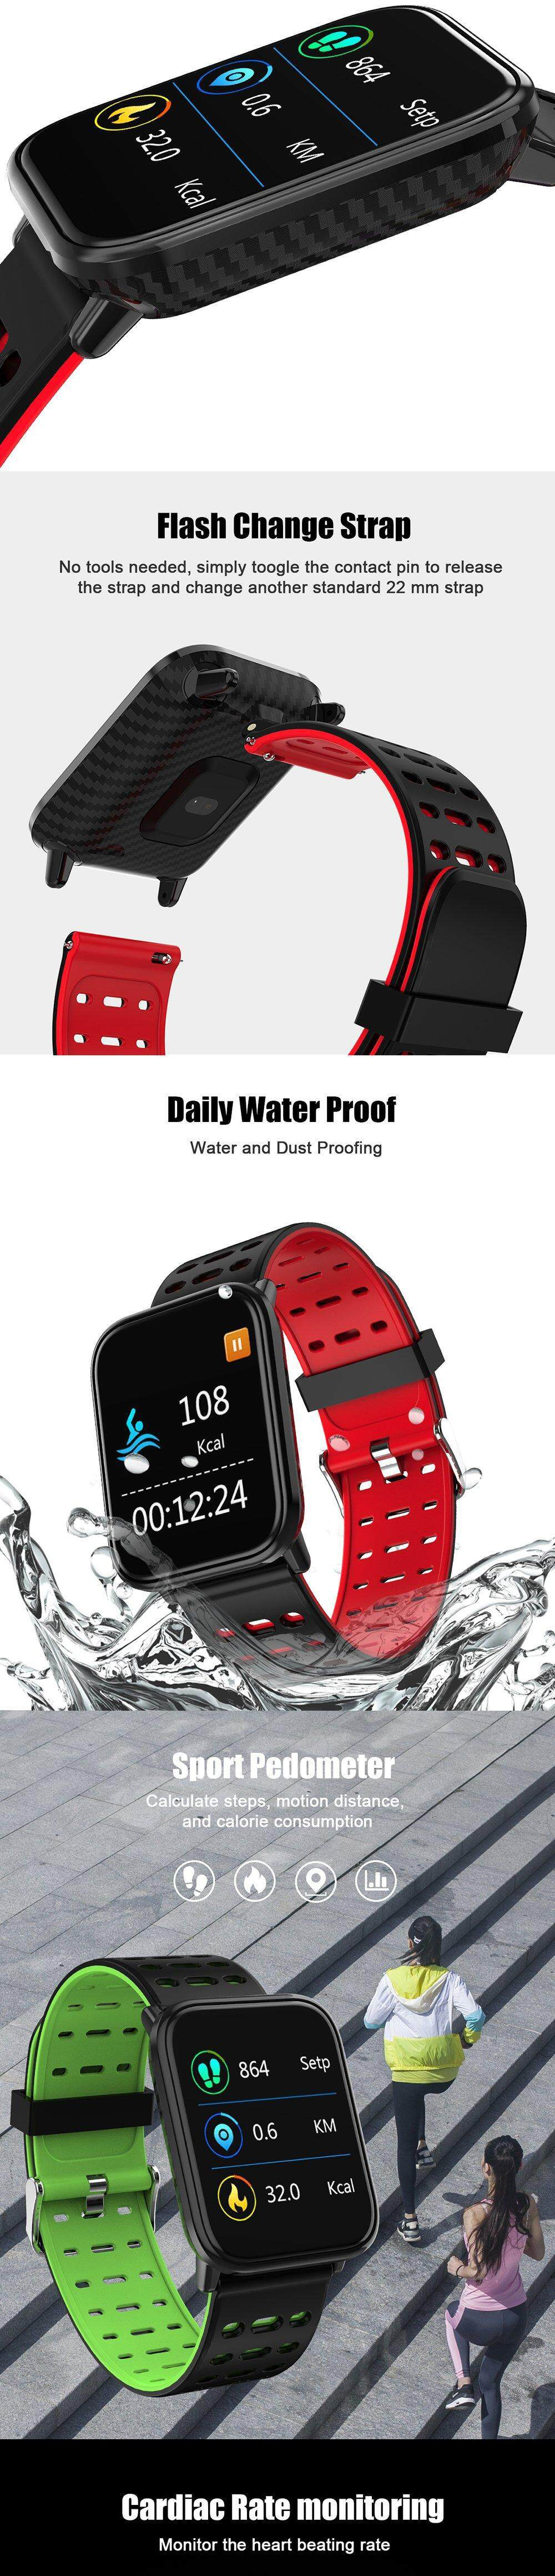 2019 New Smart Watch Fitness Tracke Band IP68 Waterproof Smartwatch Men  Women Clock for iPhone IOS Xiaomi Android Phone